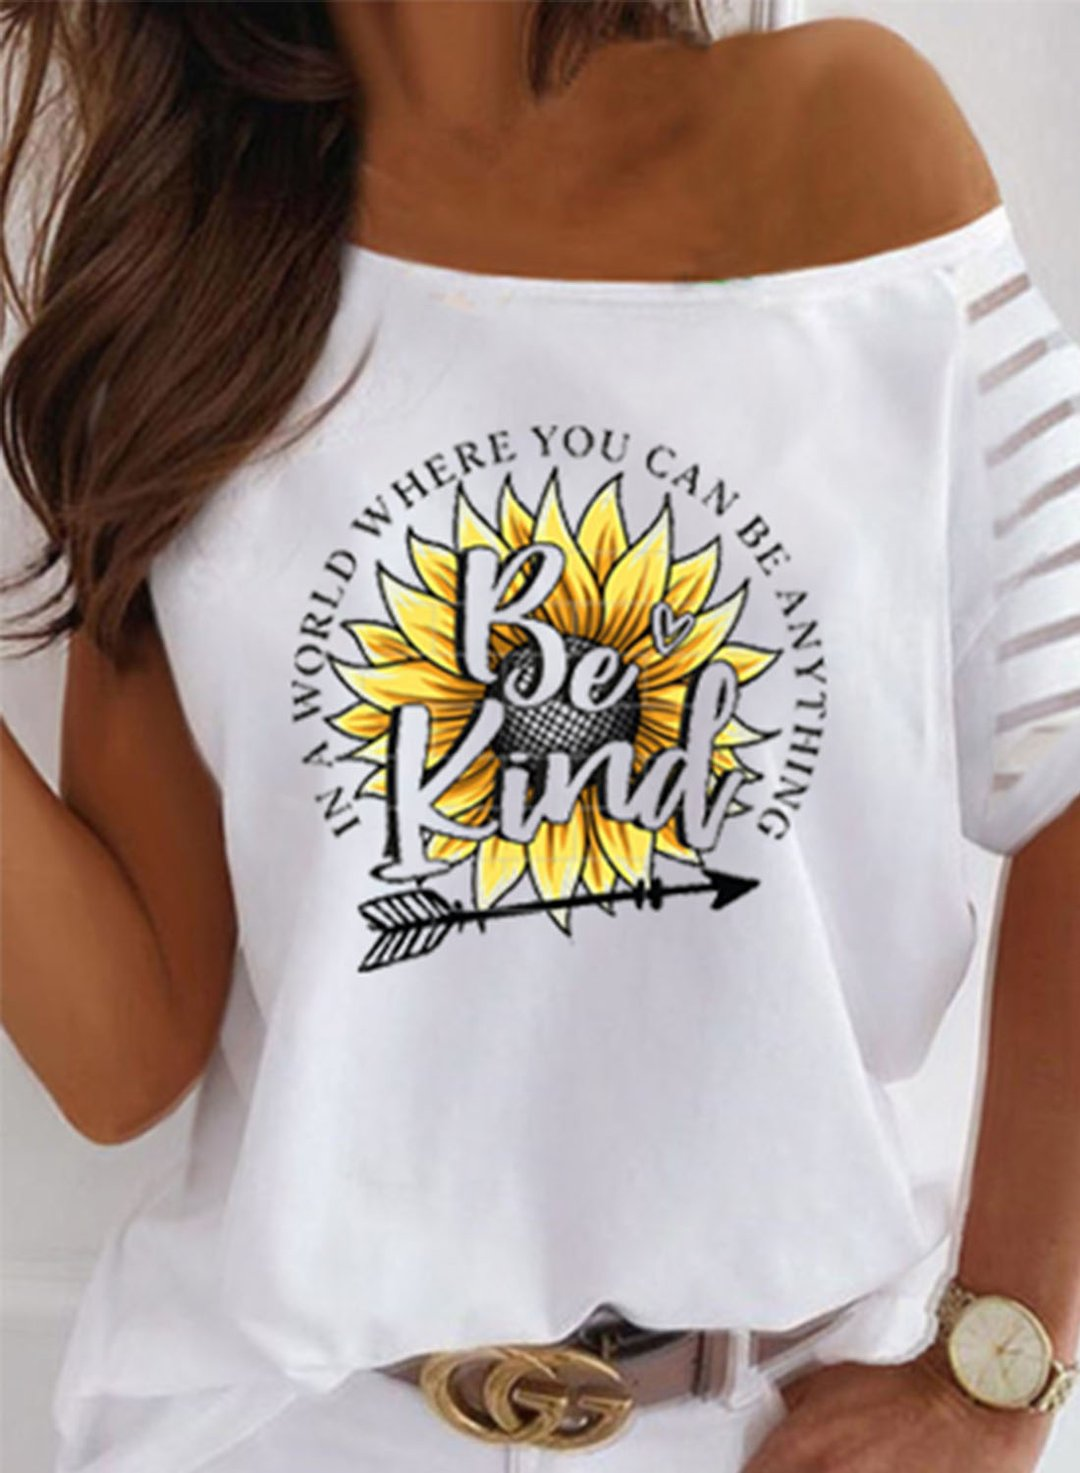 White Women's T-shirts Sunflower Letter Slogan Print T-shirt LC2526793-1